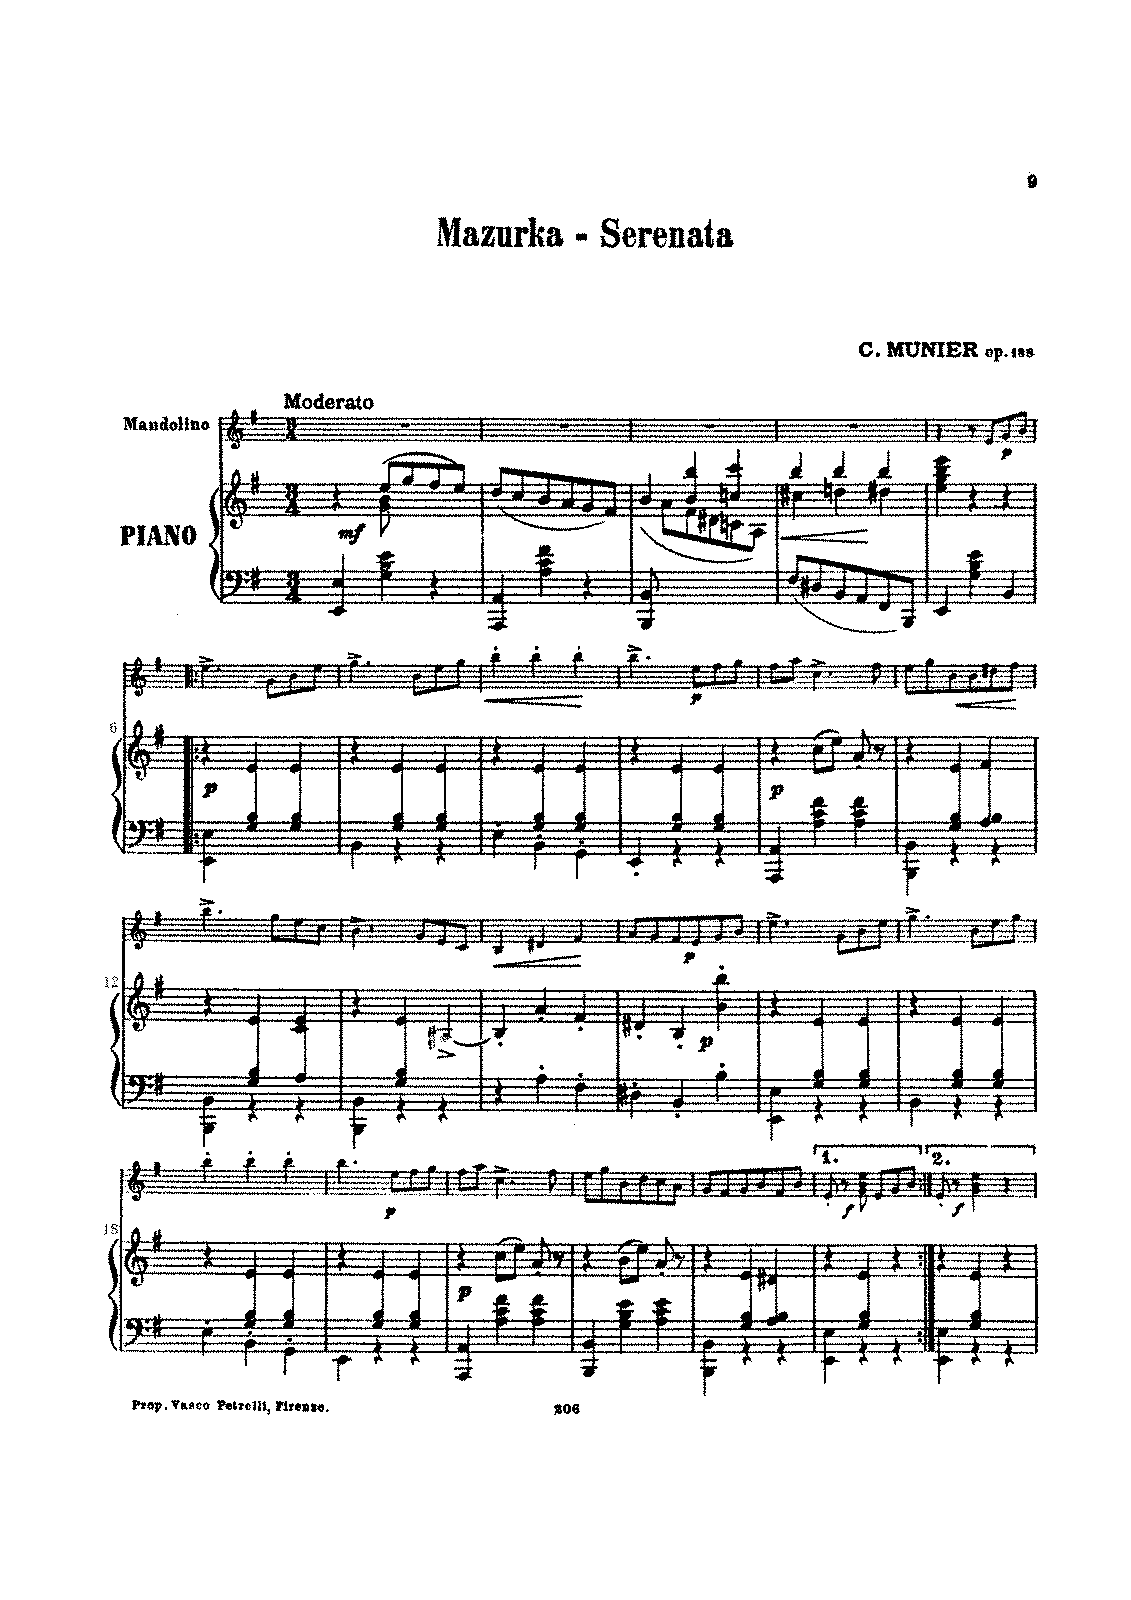 PMLP658907-Mazurka, Nelly Album Ⅲ.Serenata Op.188 C.Munier Pianoforte part.pdf